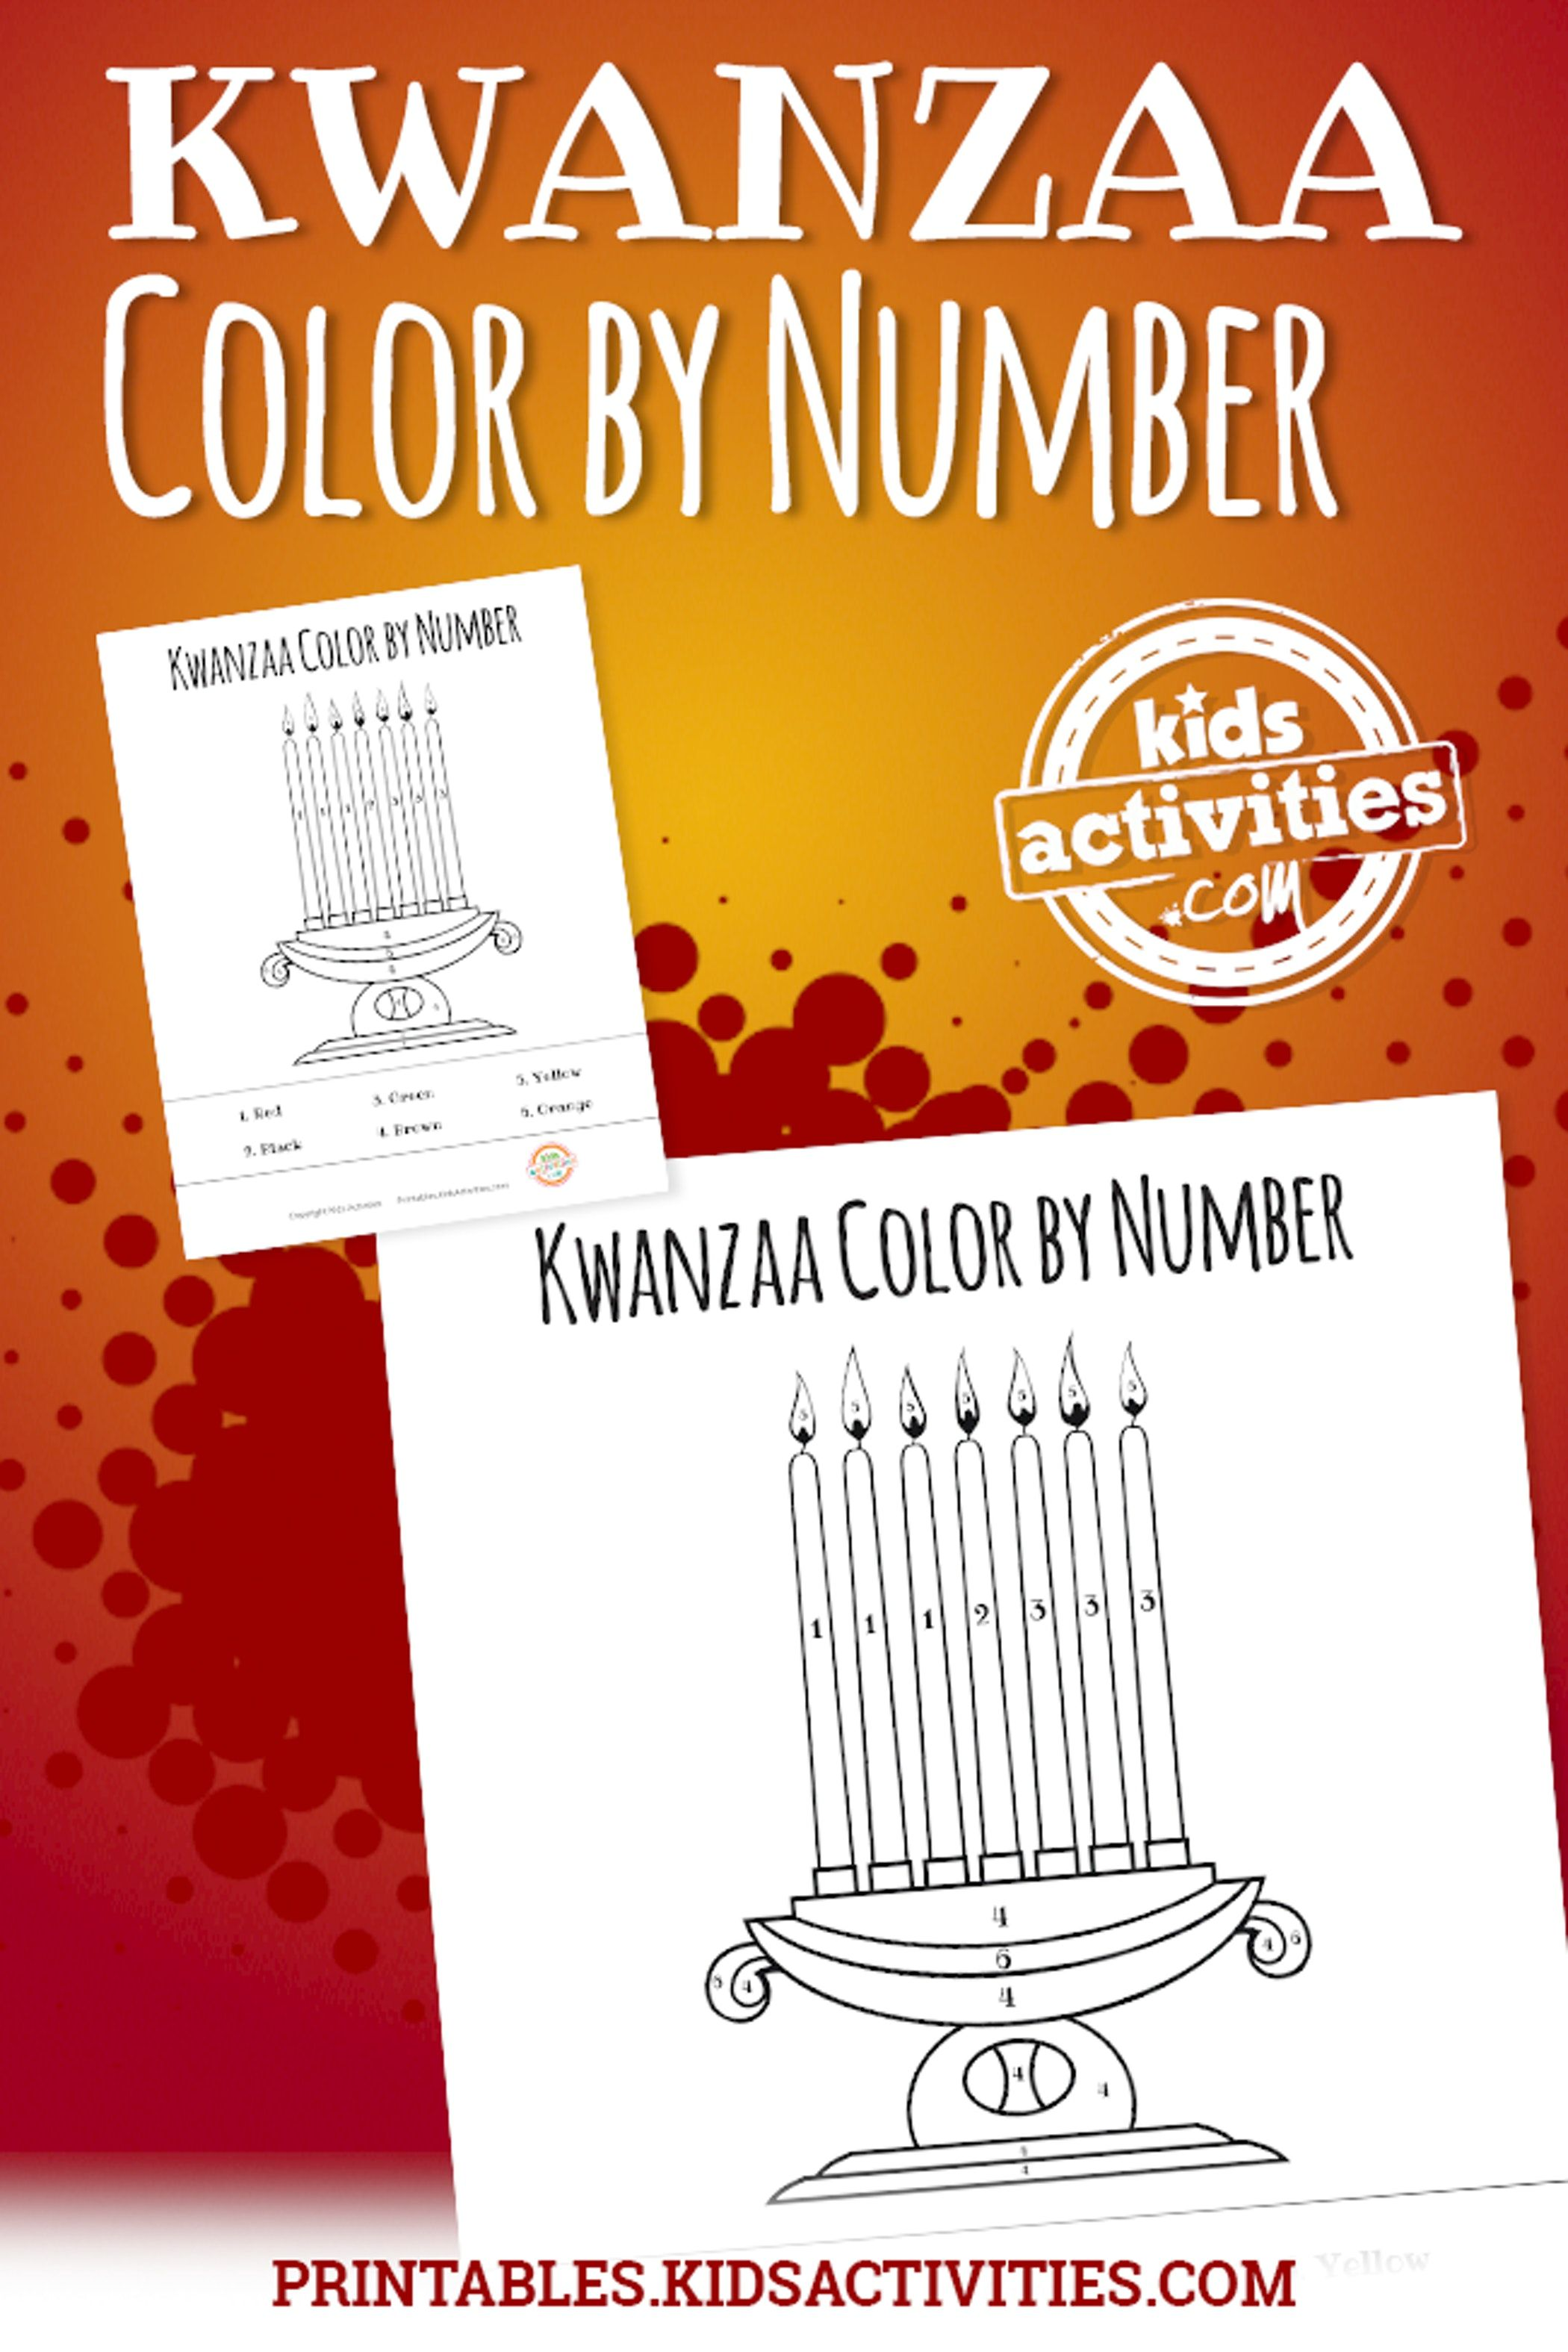 Kwanzaa Color By Number Coloring Sheet With Images